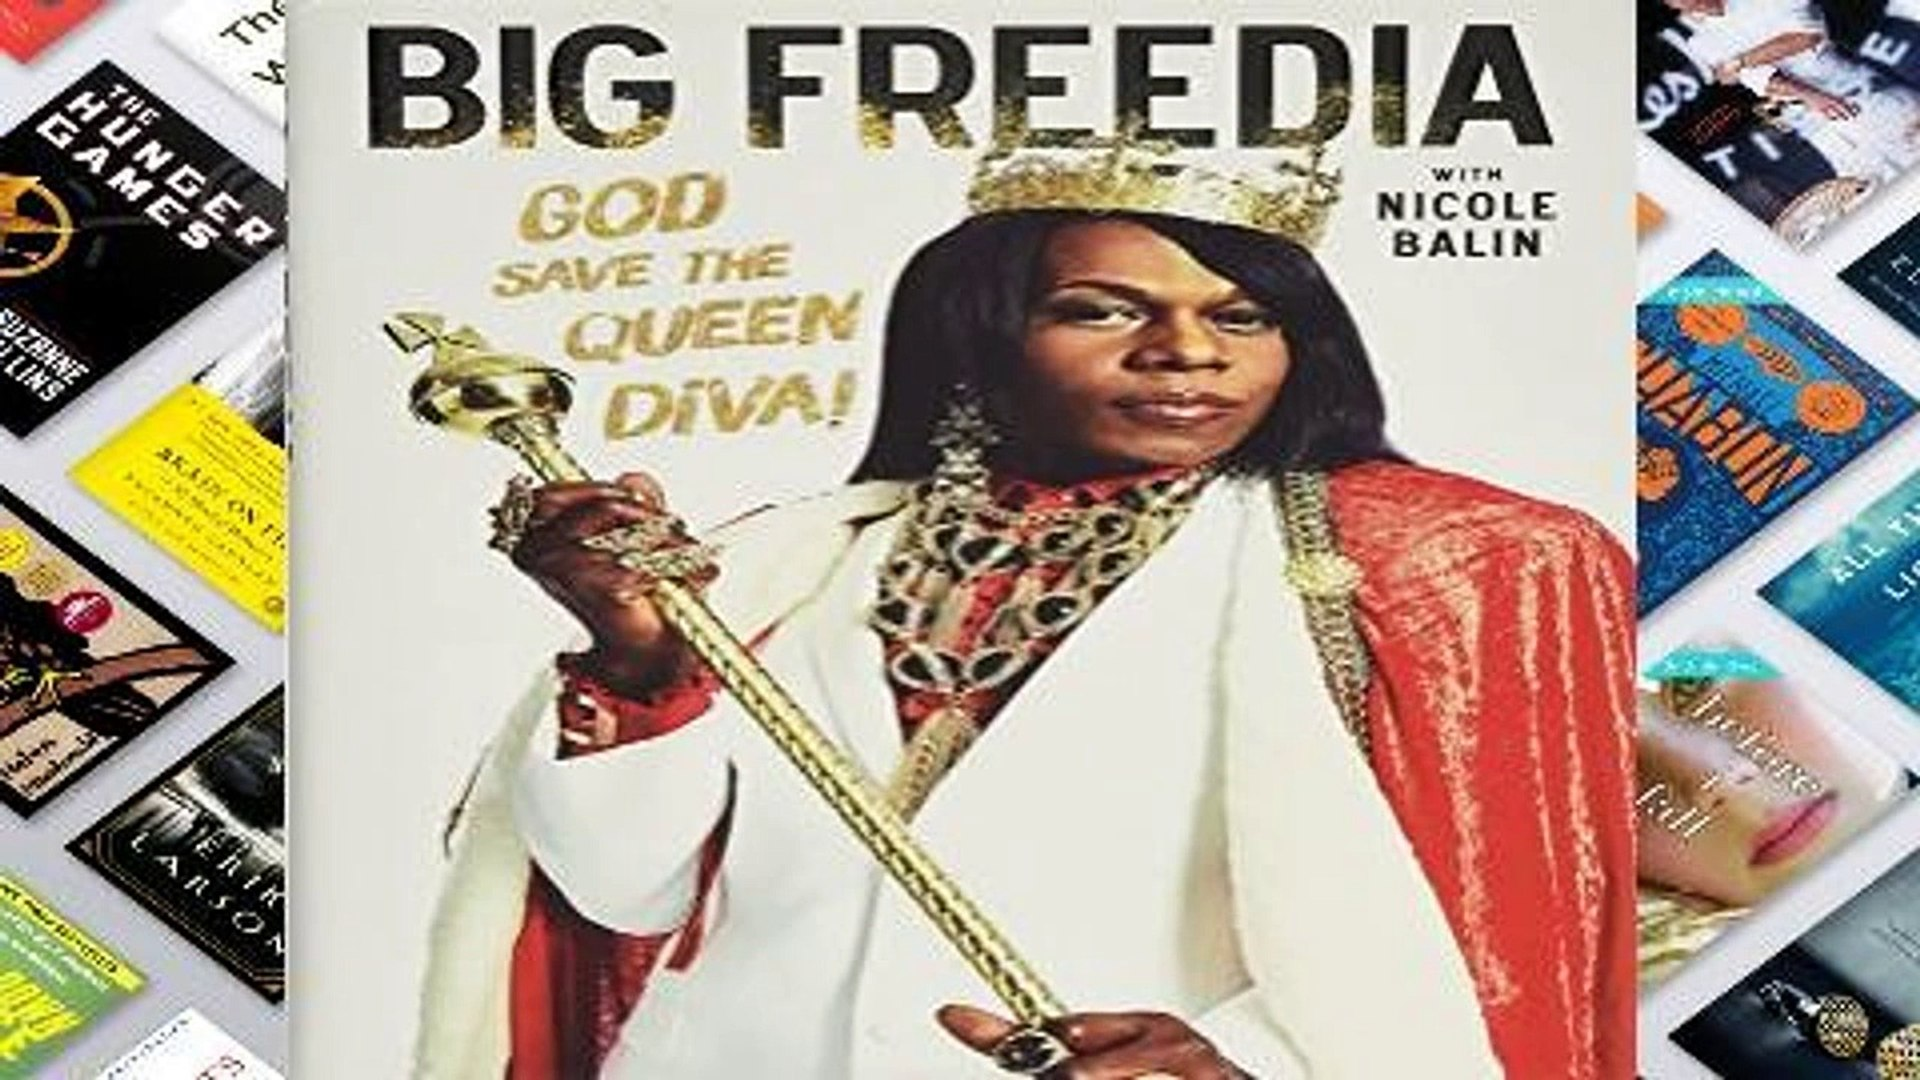 Review Big Freedia God Save The Queen Diva